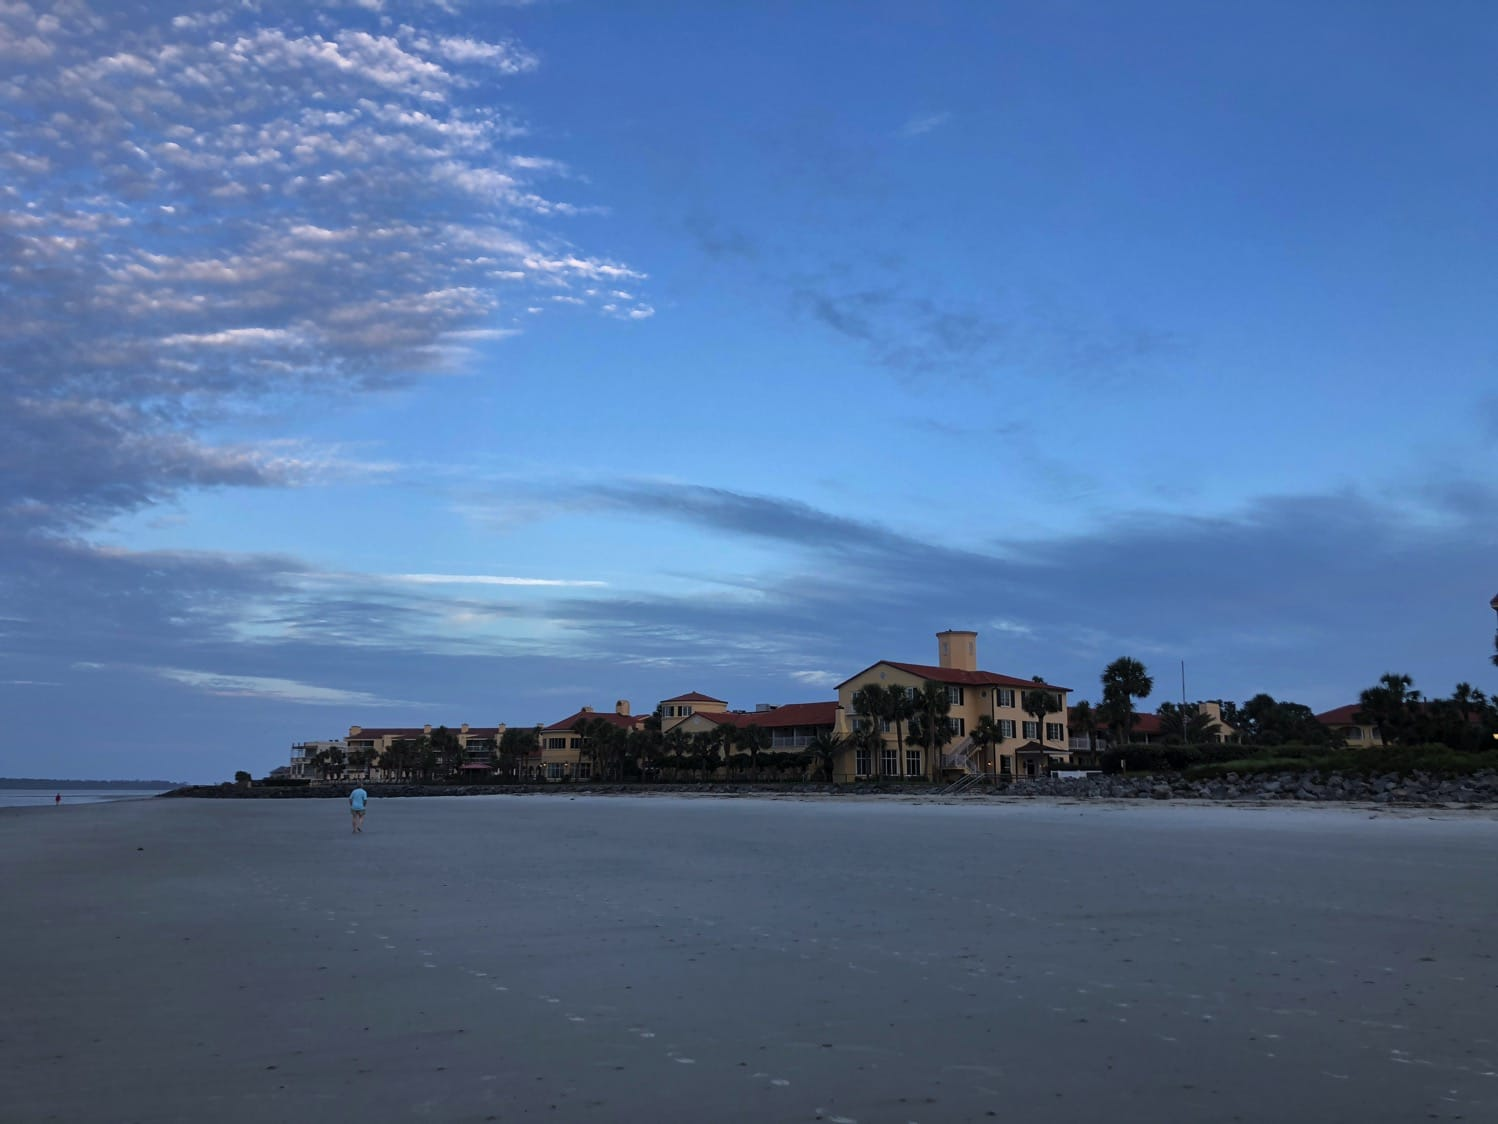 Beach front resort at St. Simons Island King and Prince